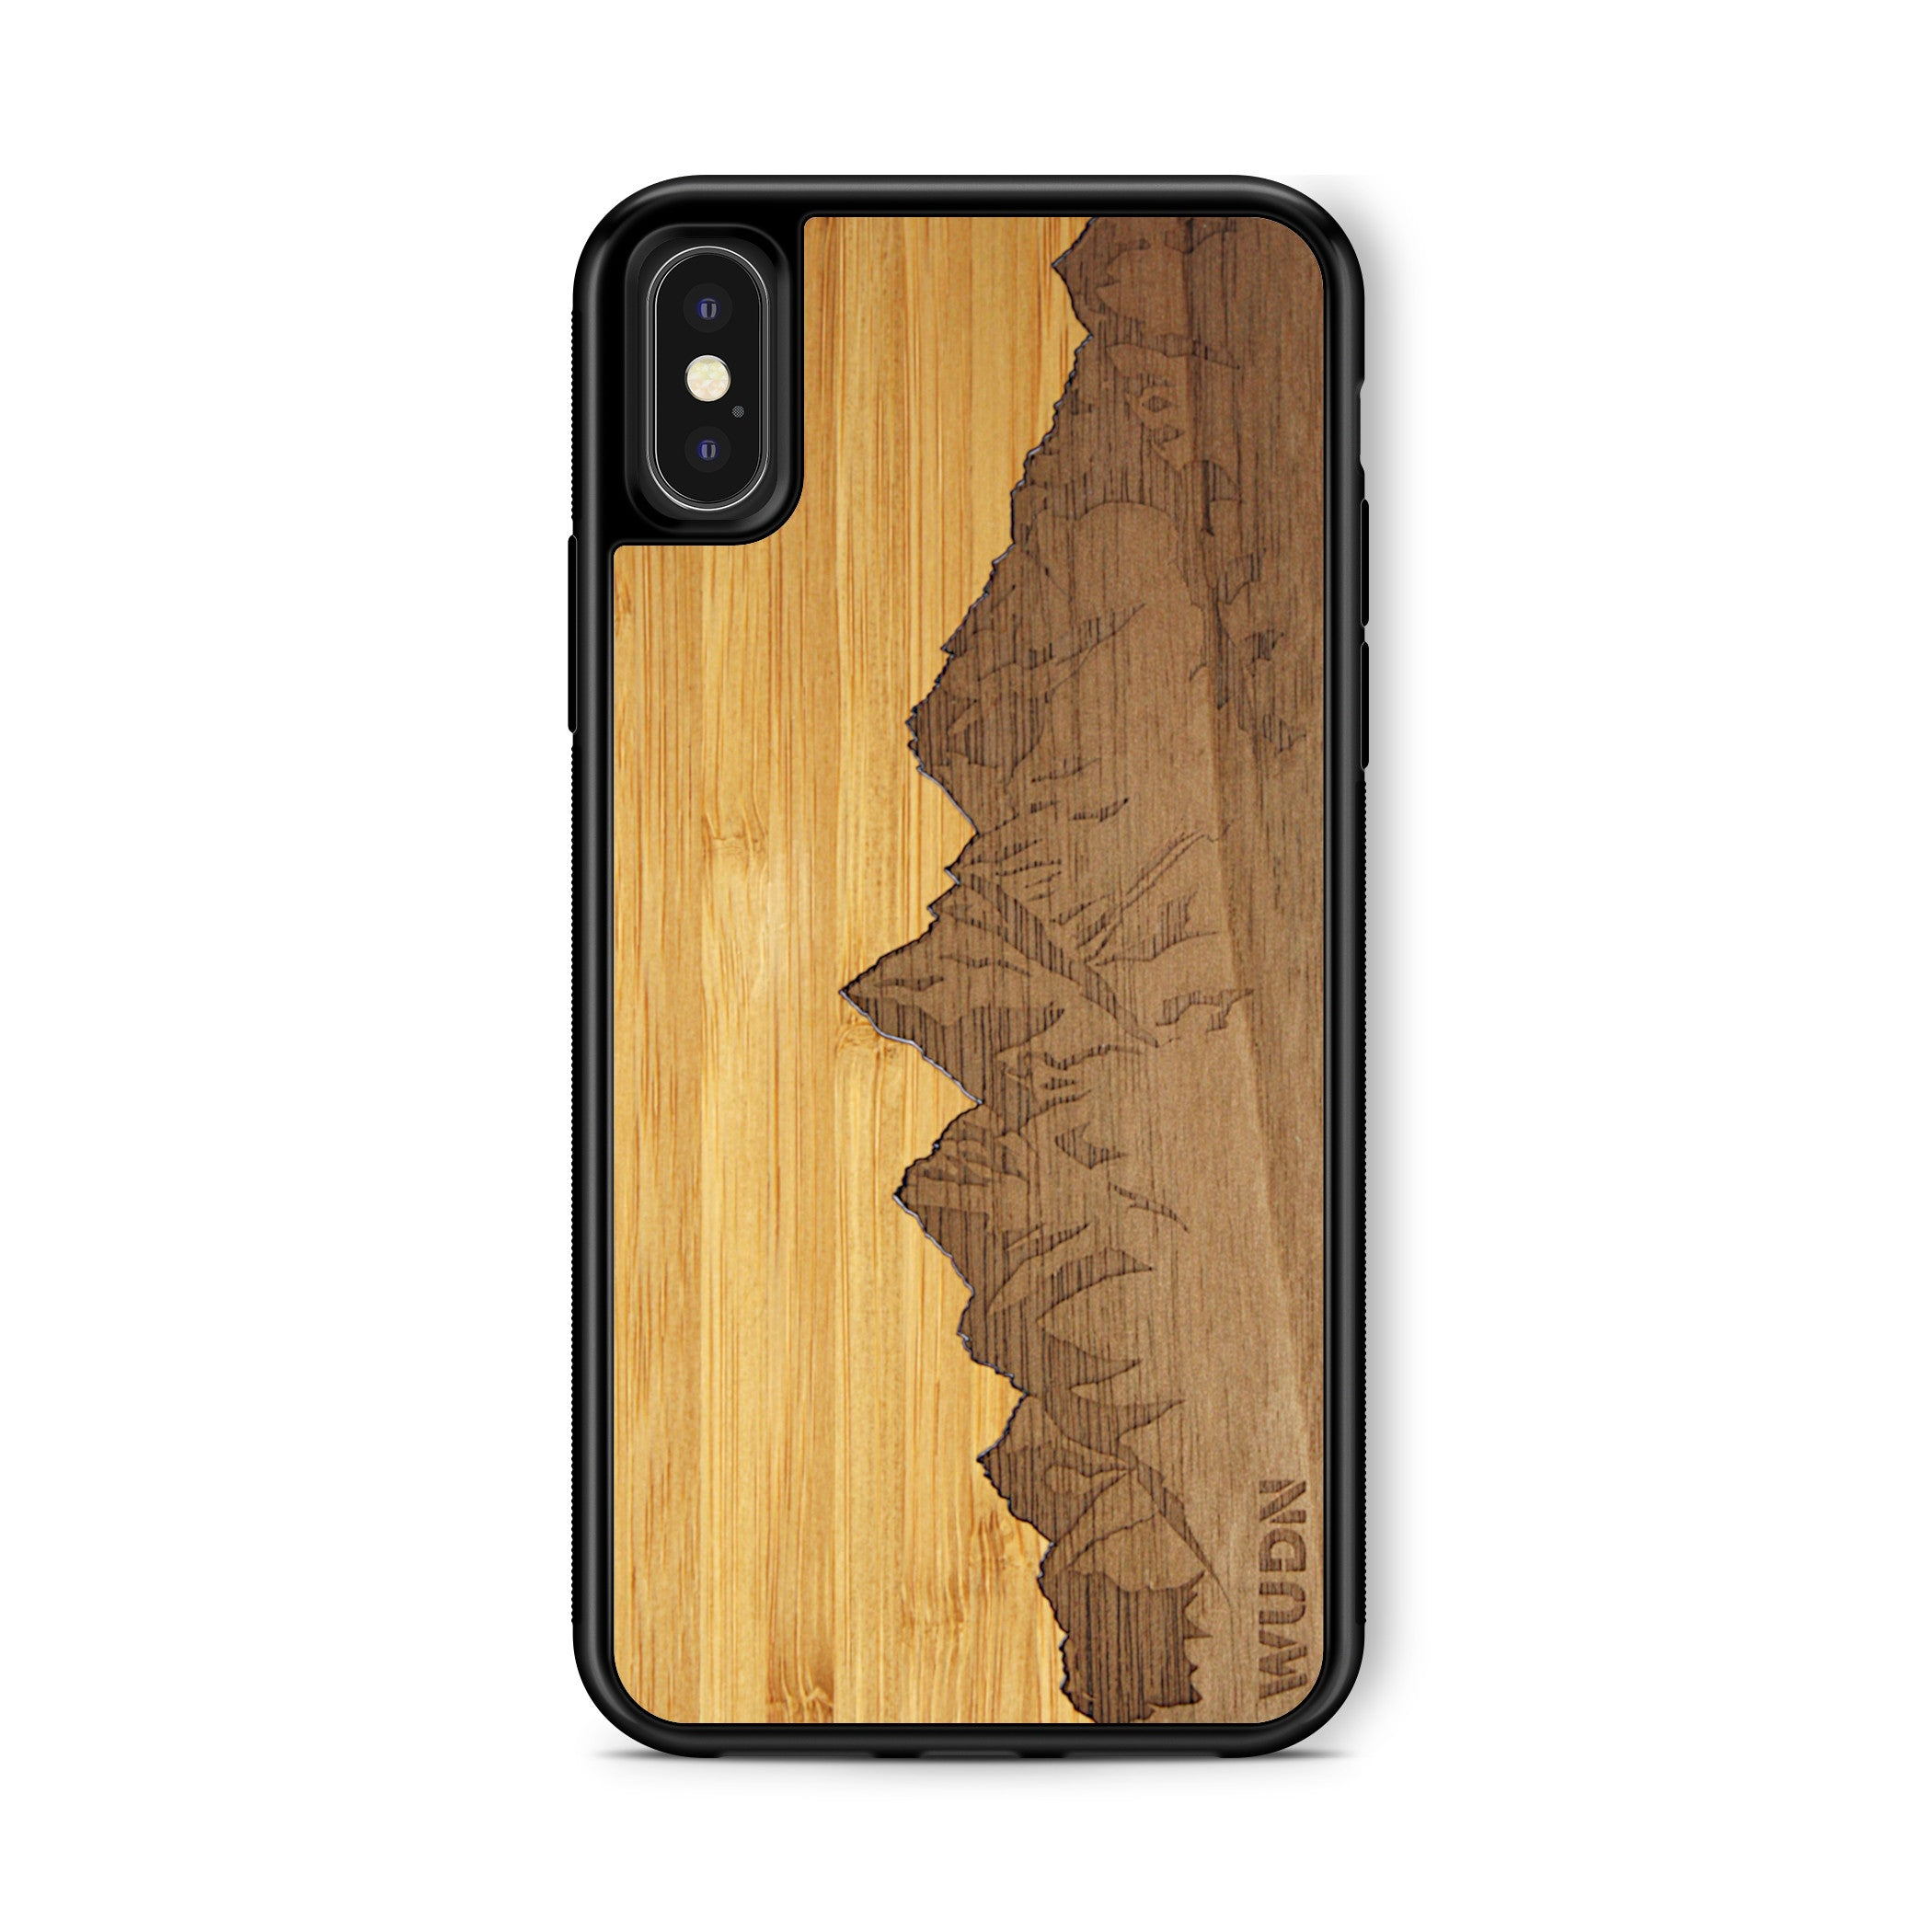 Slim Wooden Phone Case | Sawtooth Mountains Traveler, Cases by WUDN for iPhone X / Xs